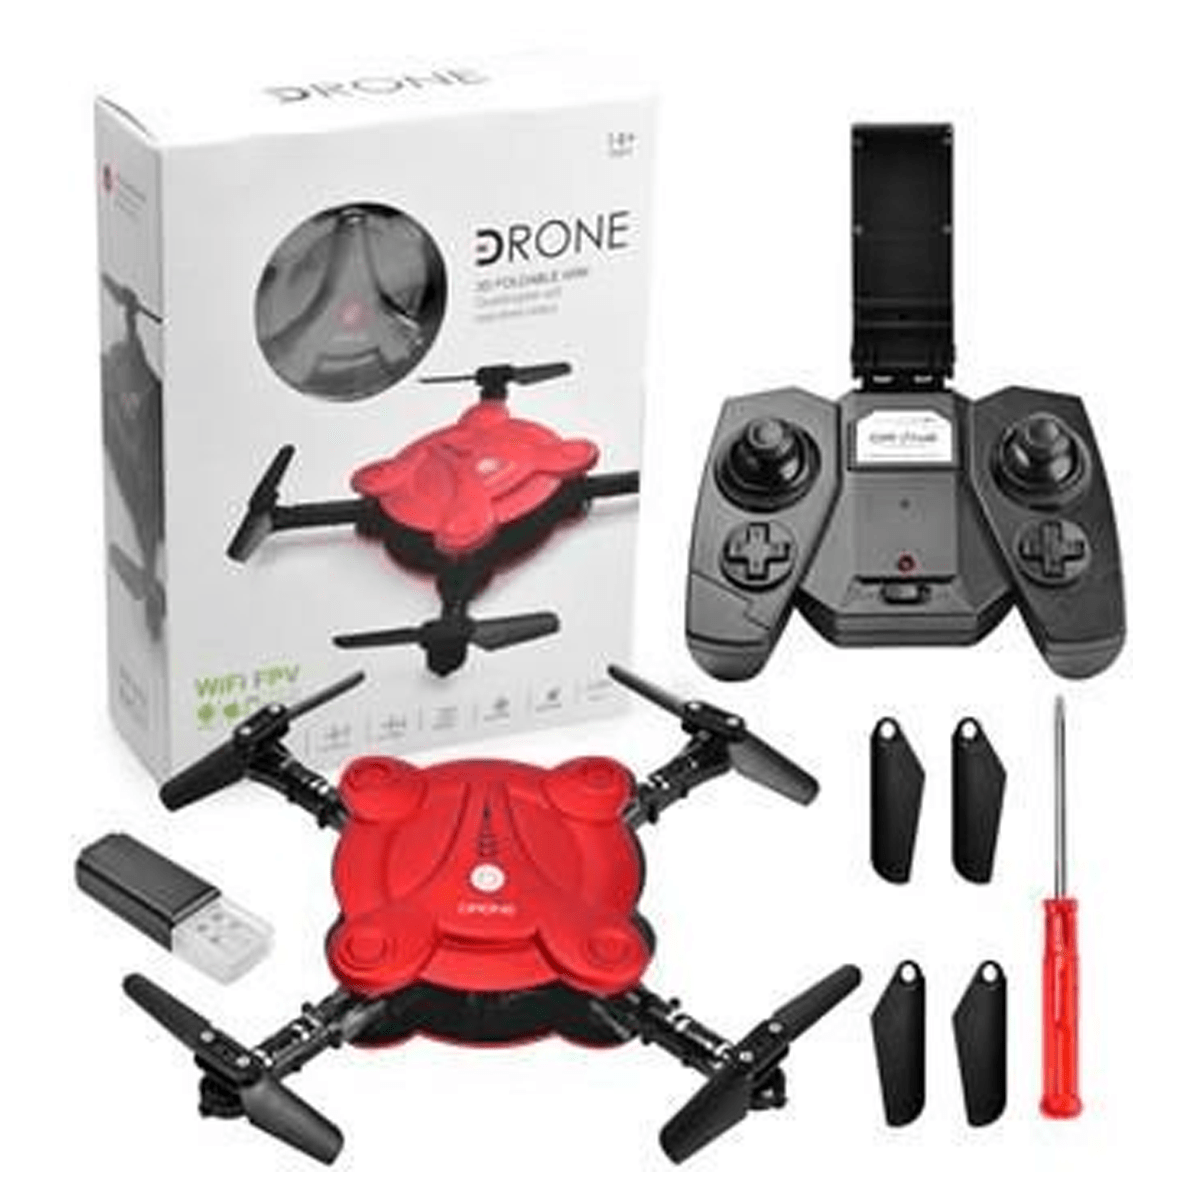 mini rc self portable drone red and black with remote box and tools